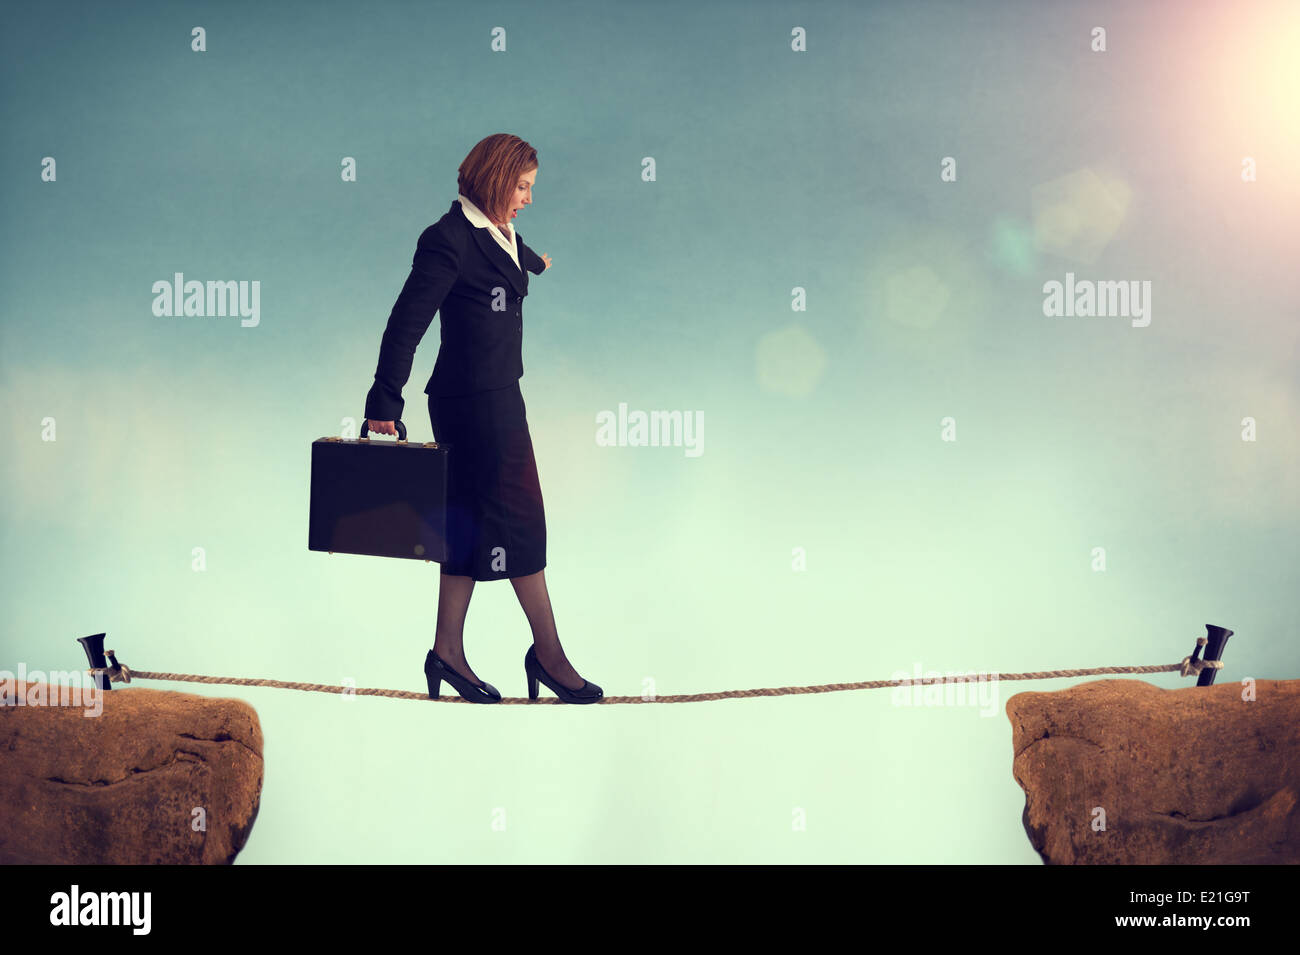 businesswoman balancing on a tightrope facing a challenge or risk or conquering adversity concept - Stock Image